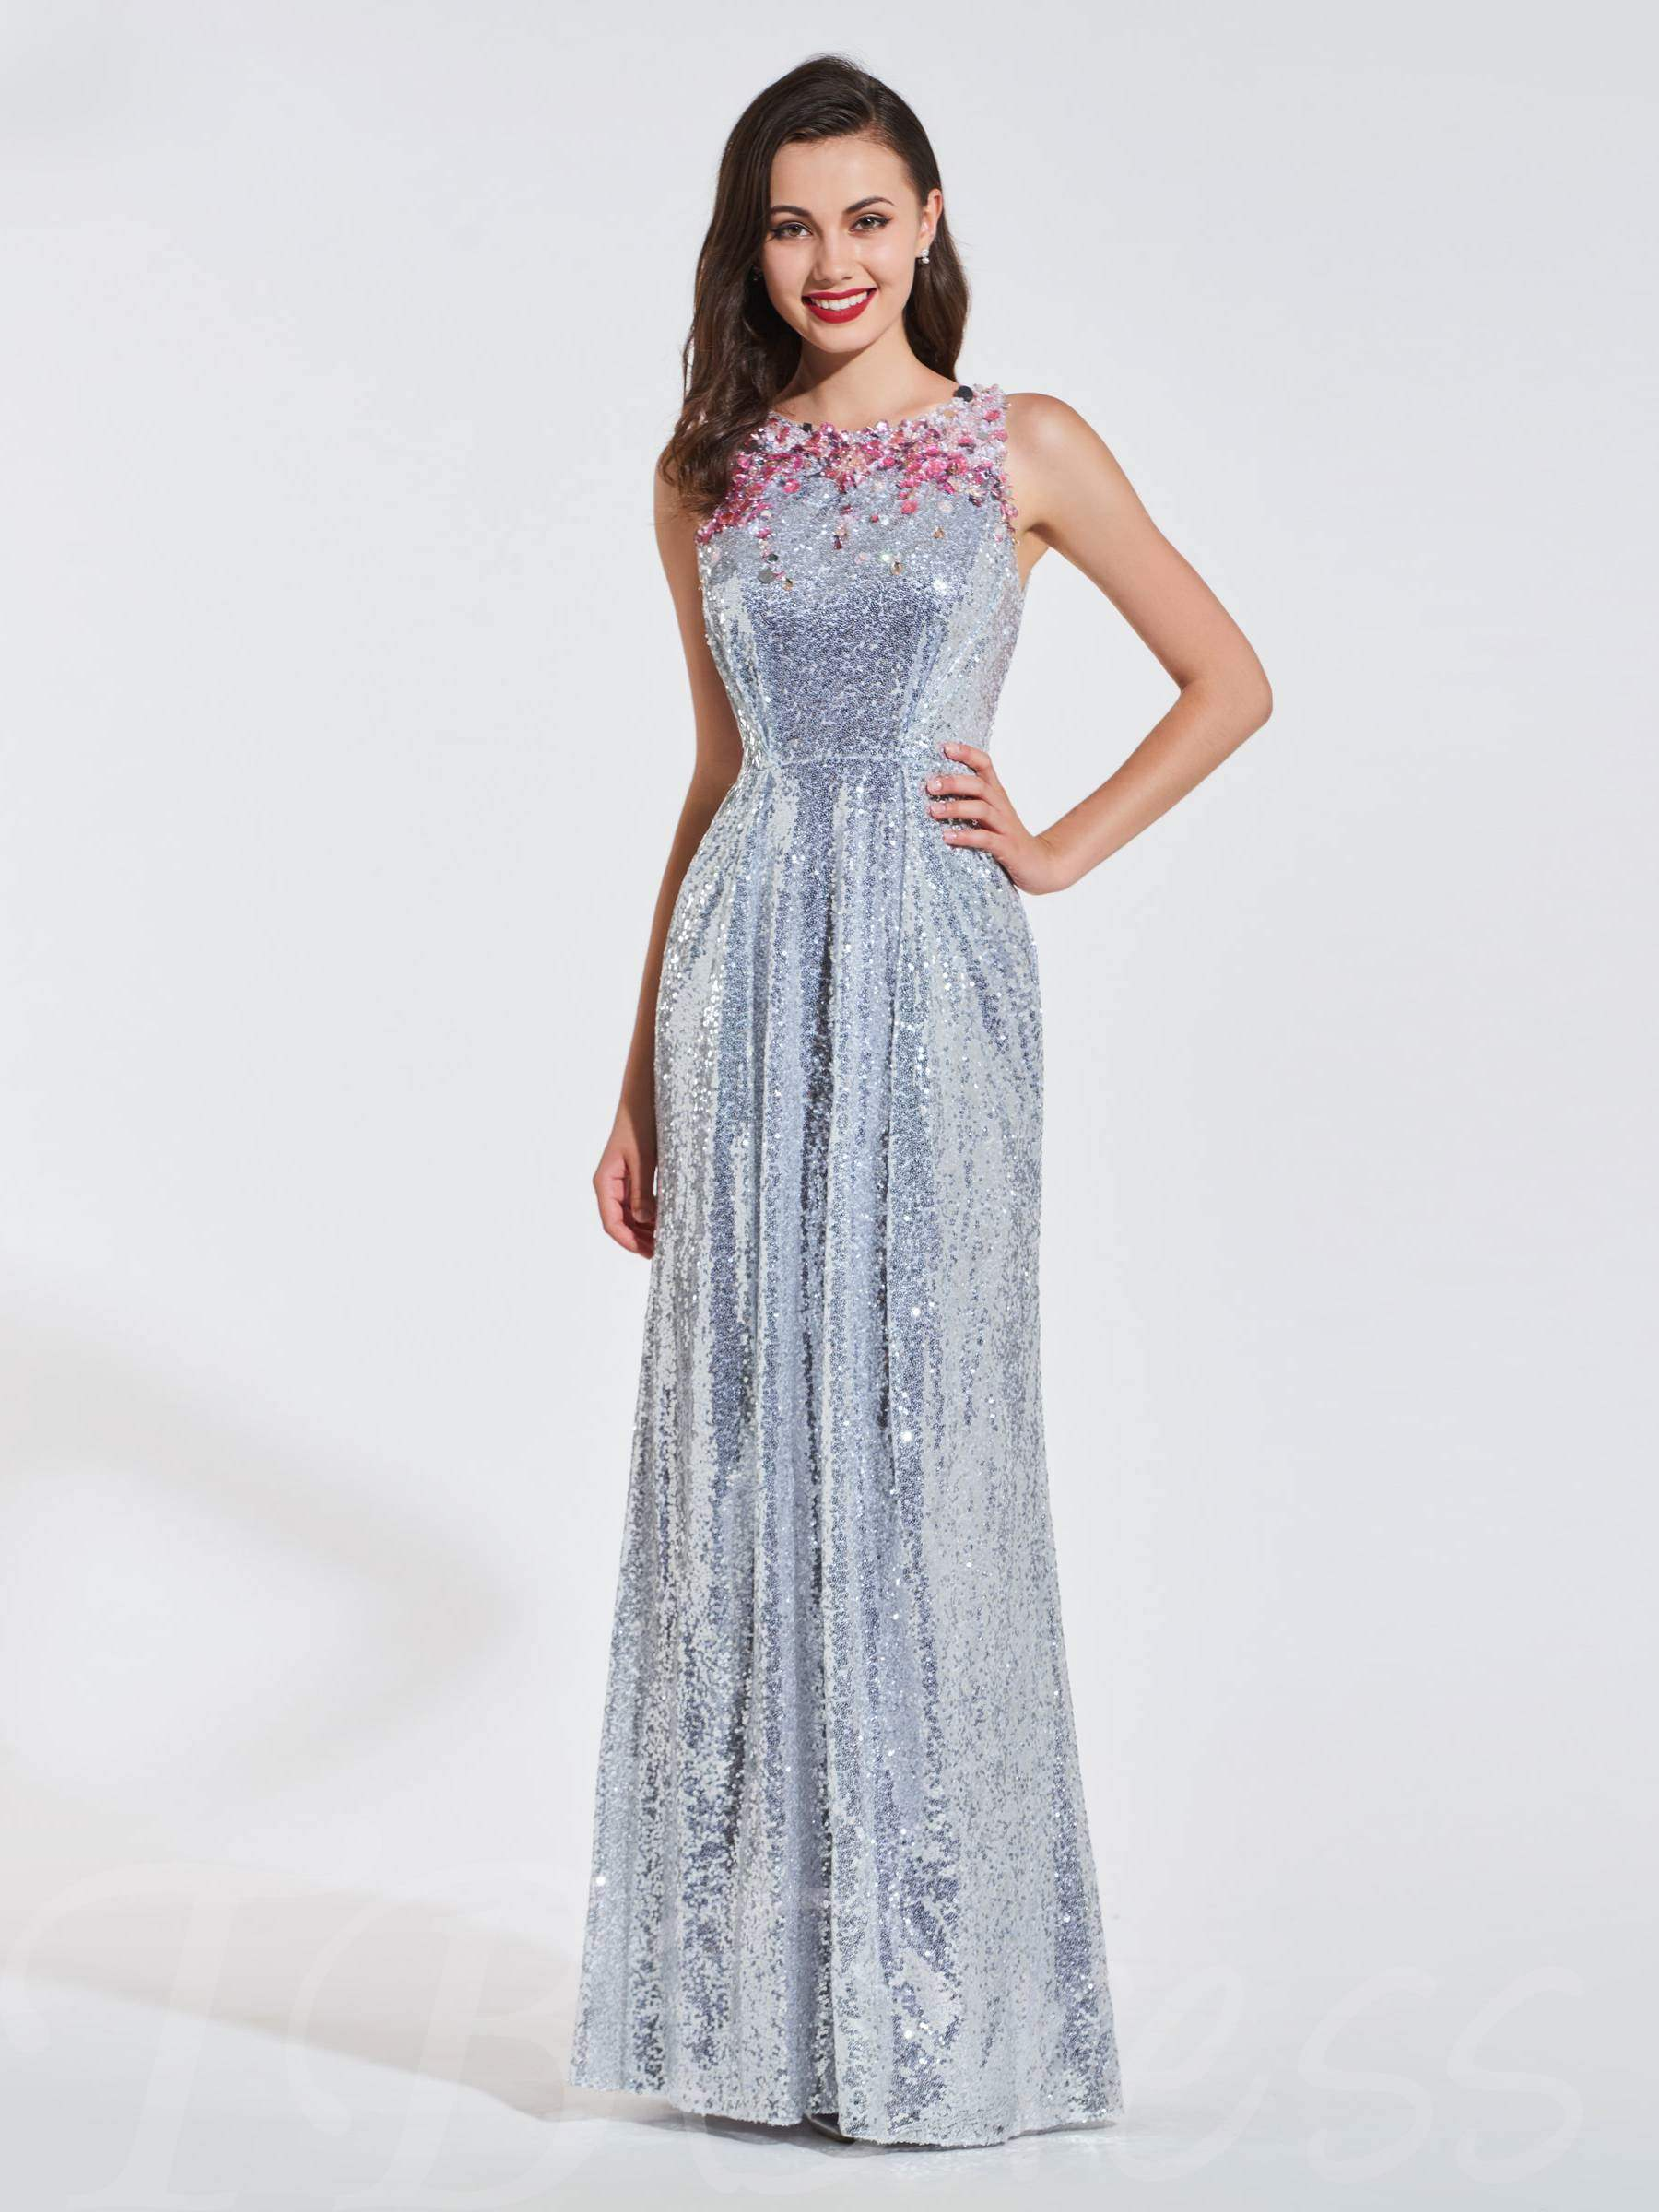 Buy Sheath Scoop Appliques Sequins Evening Dress, Spring,Summer,Fall,Winter, 13371173 for $159.09 in TBDress store